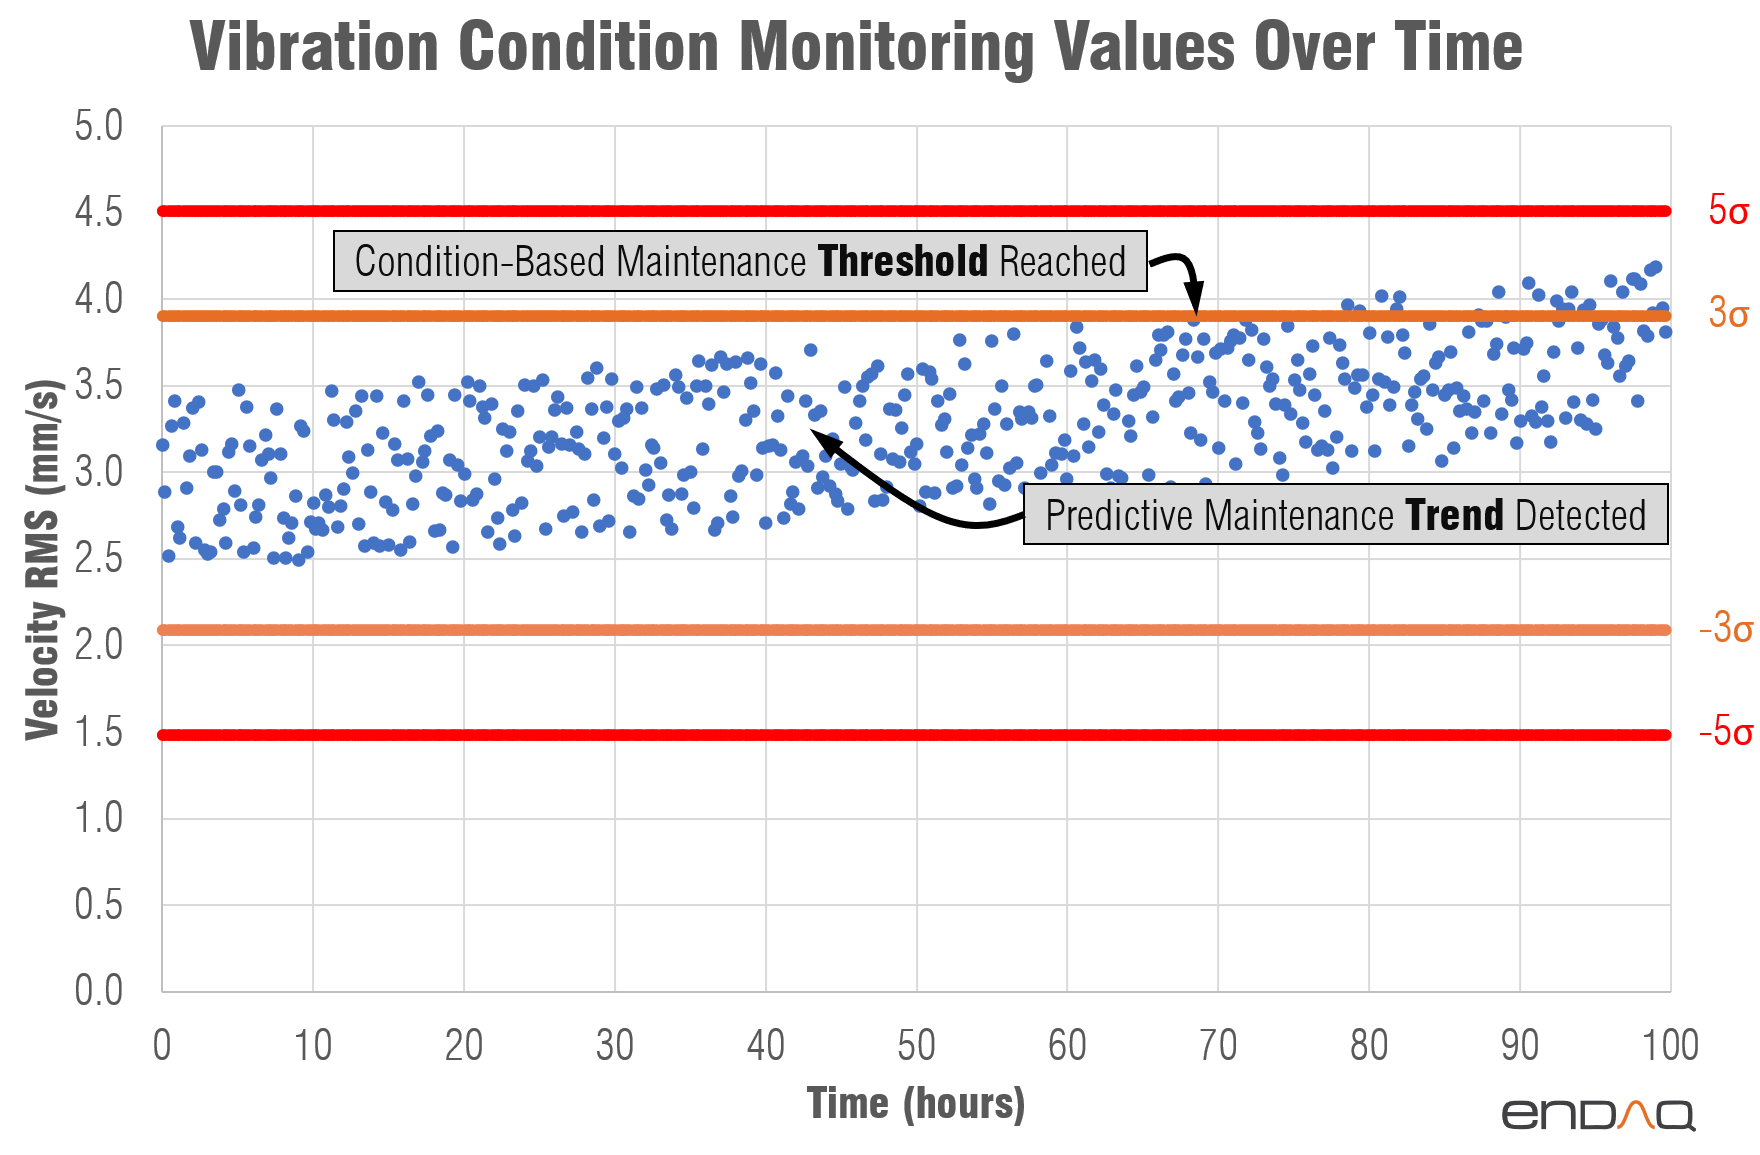 Vibration-Condition-Monitoring-Predictive-Alarms-Standard-Deviation